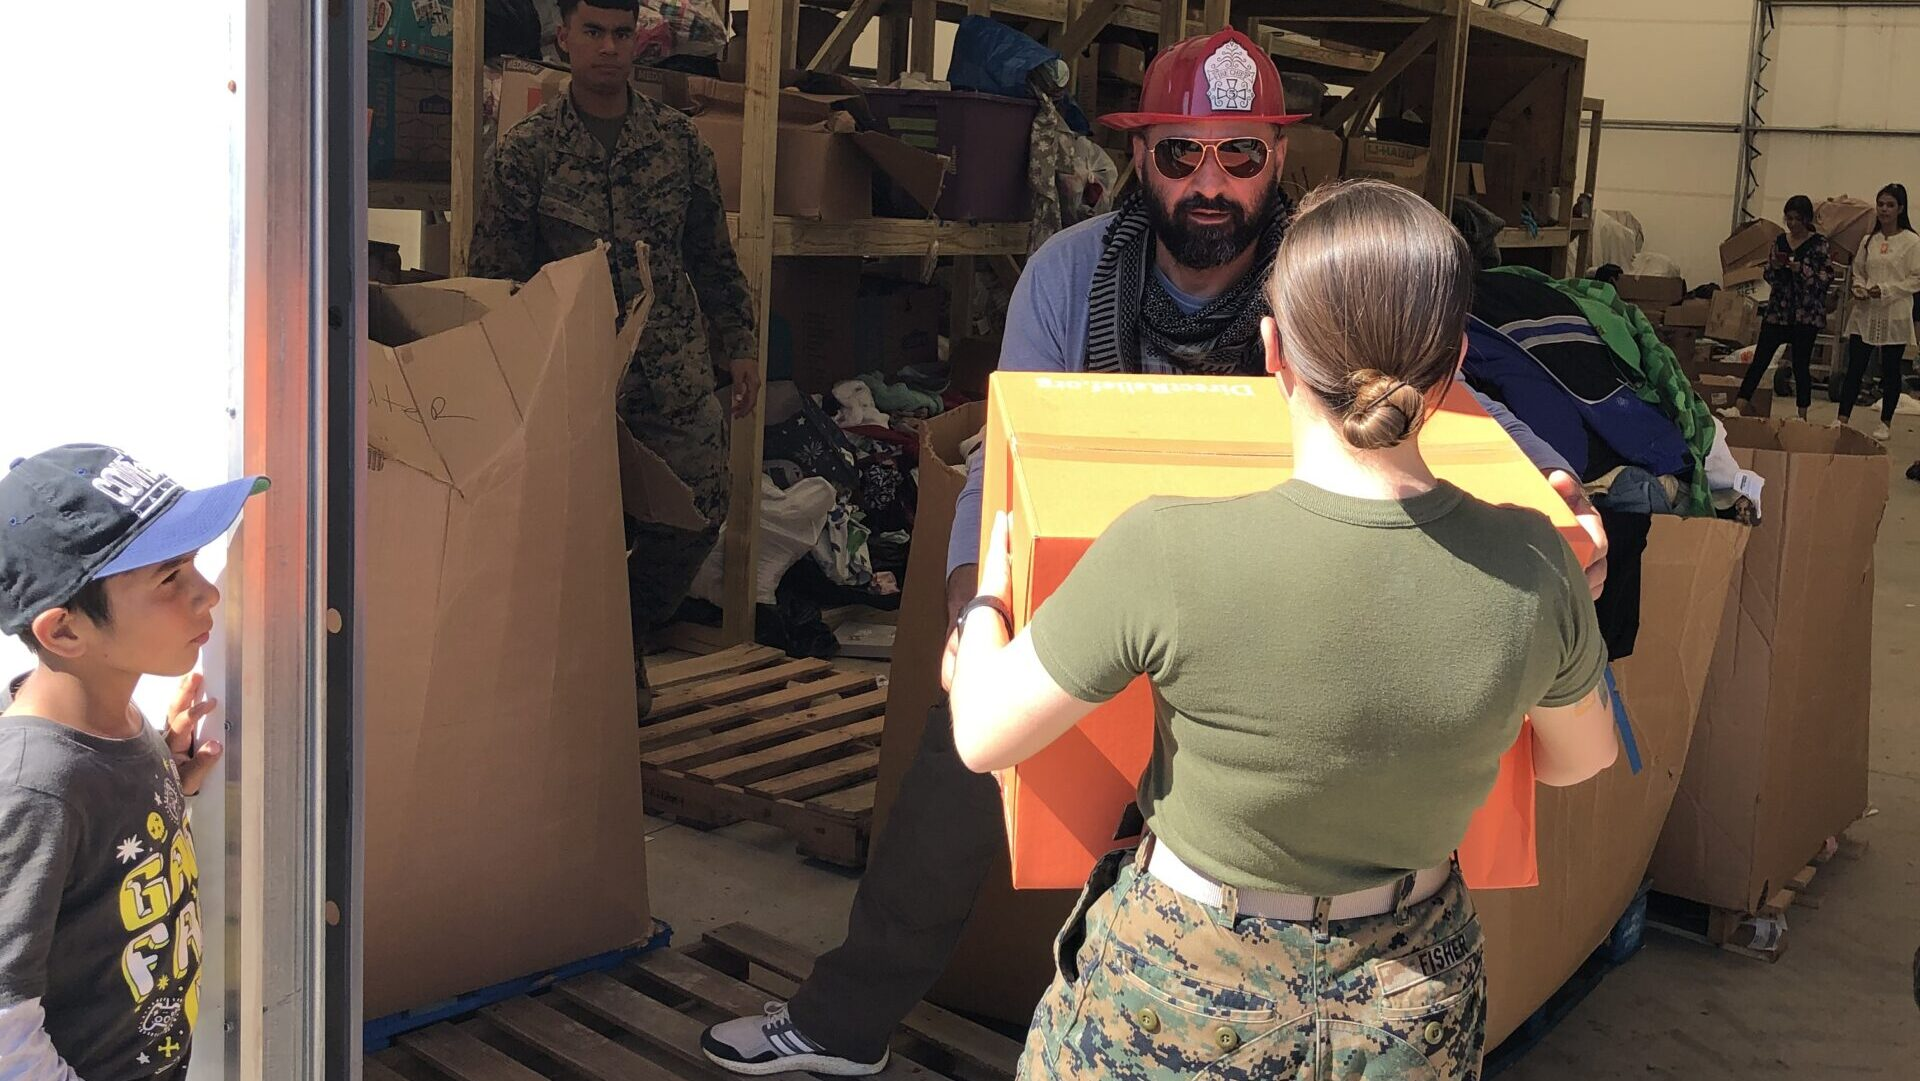 U.S. Marines receive donated supplies for Afghan refugees on Sep. 30, 2021 at Marine Corps Base Quantico in Virginia. (Photo Courtesy of Natalie Trogus)